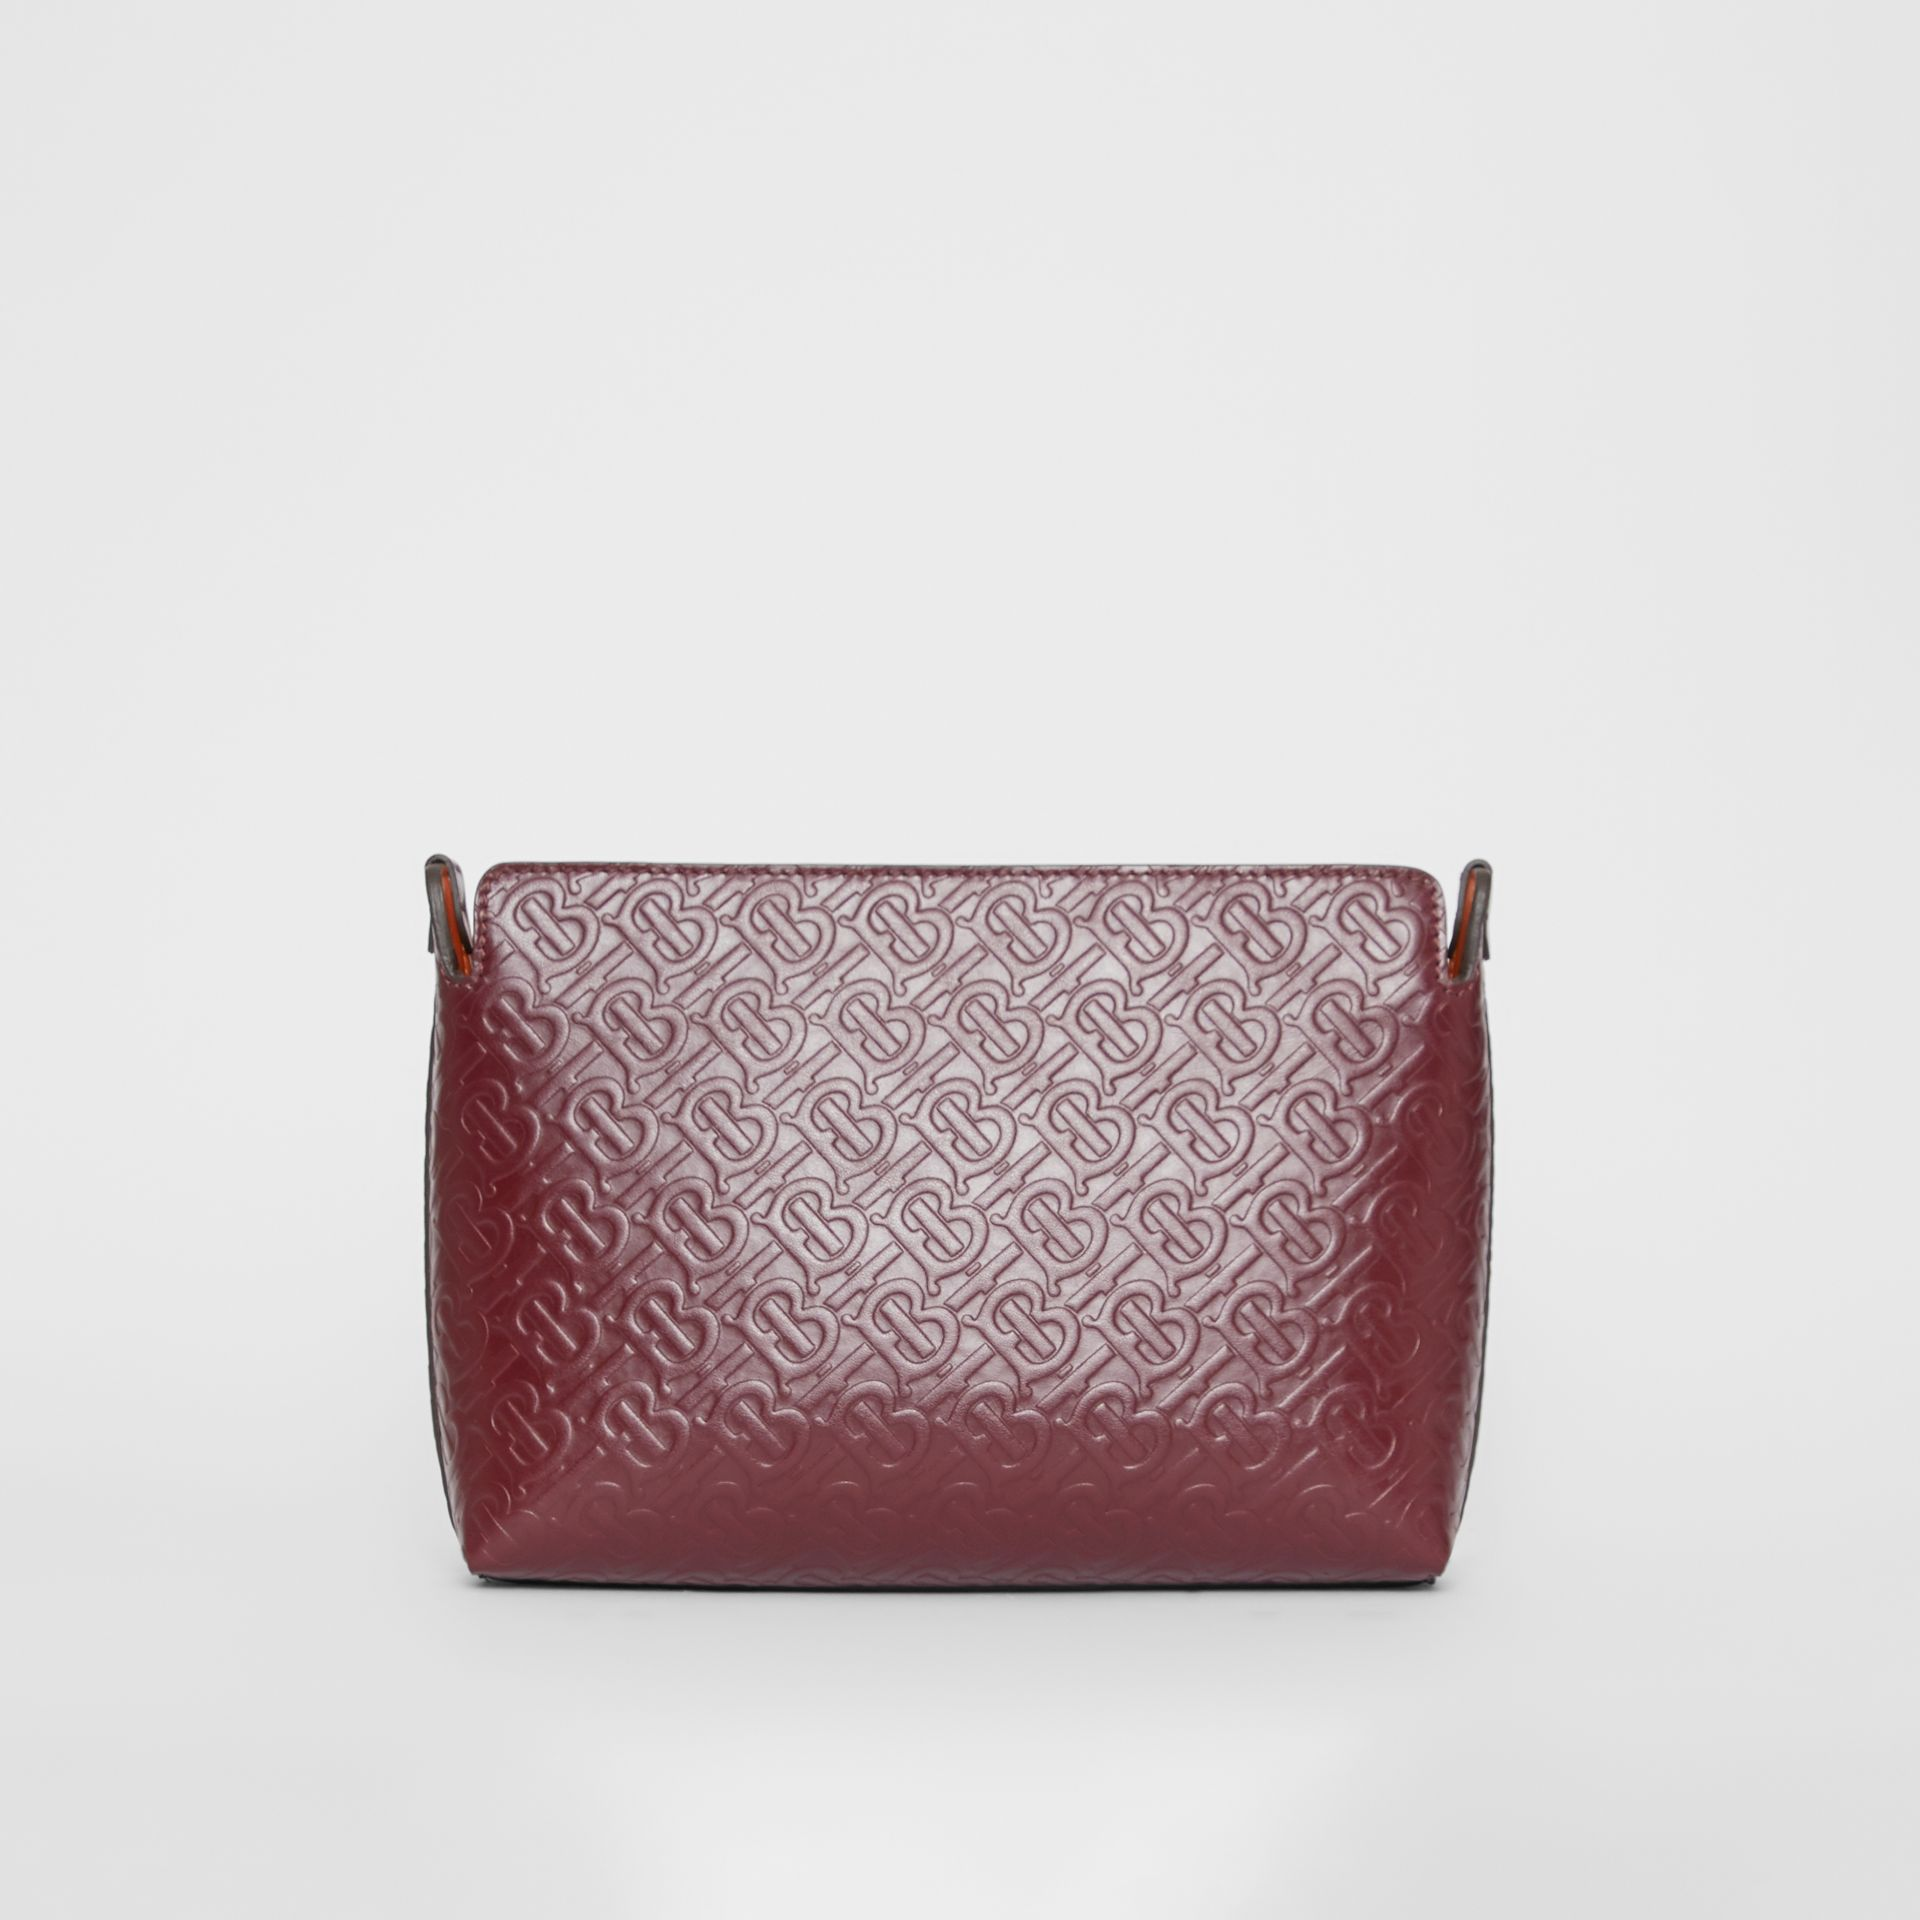 Medium Monogram Leather Clutch in Oxblood - Women | Burberry - gallery image 0